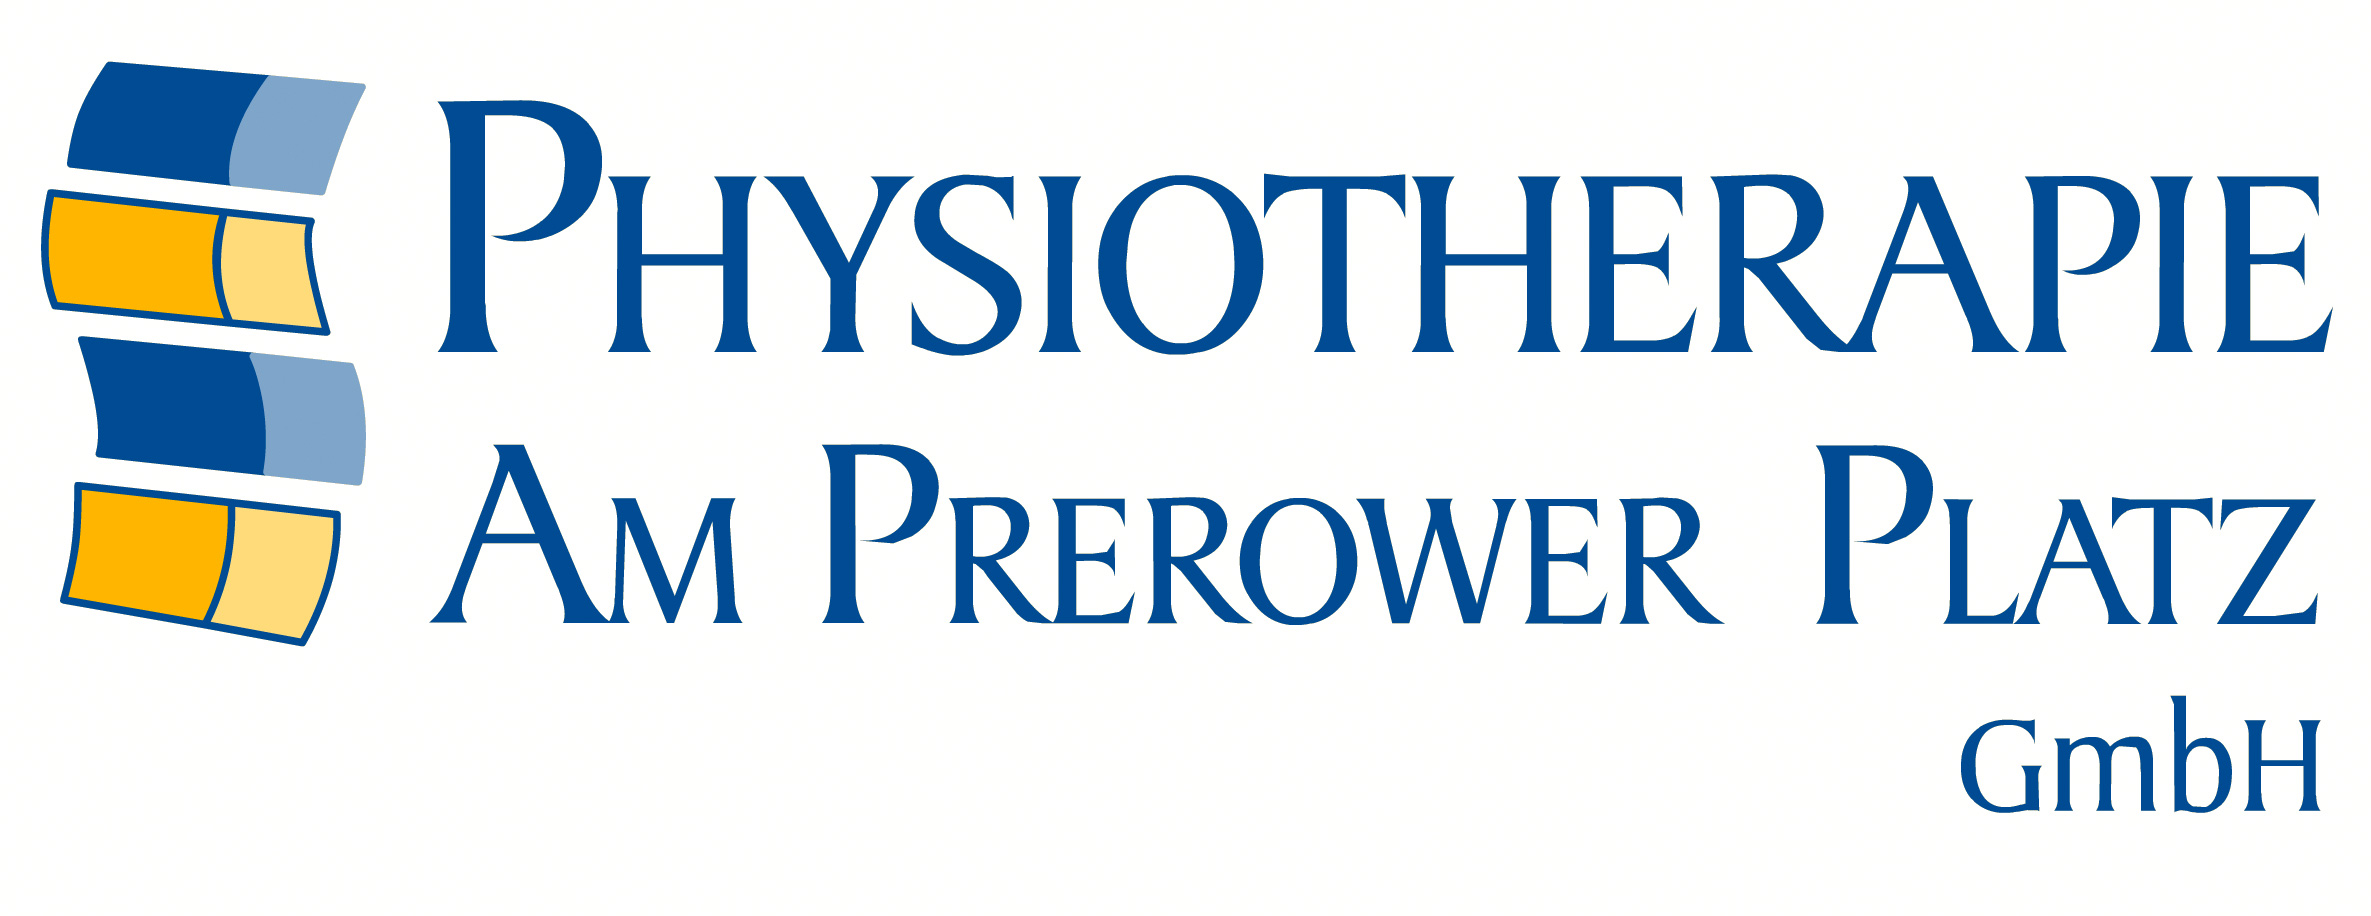 physiotherapie prerower platz logo hires